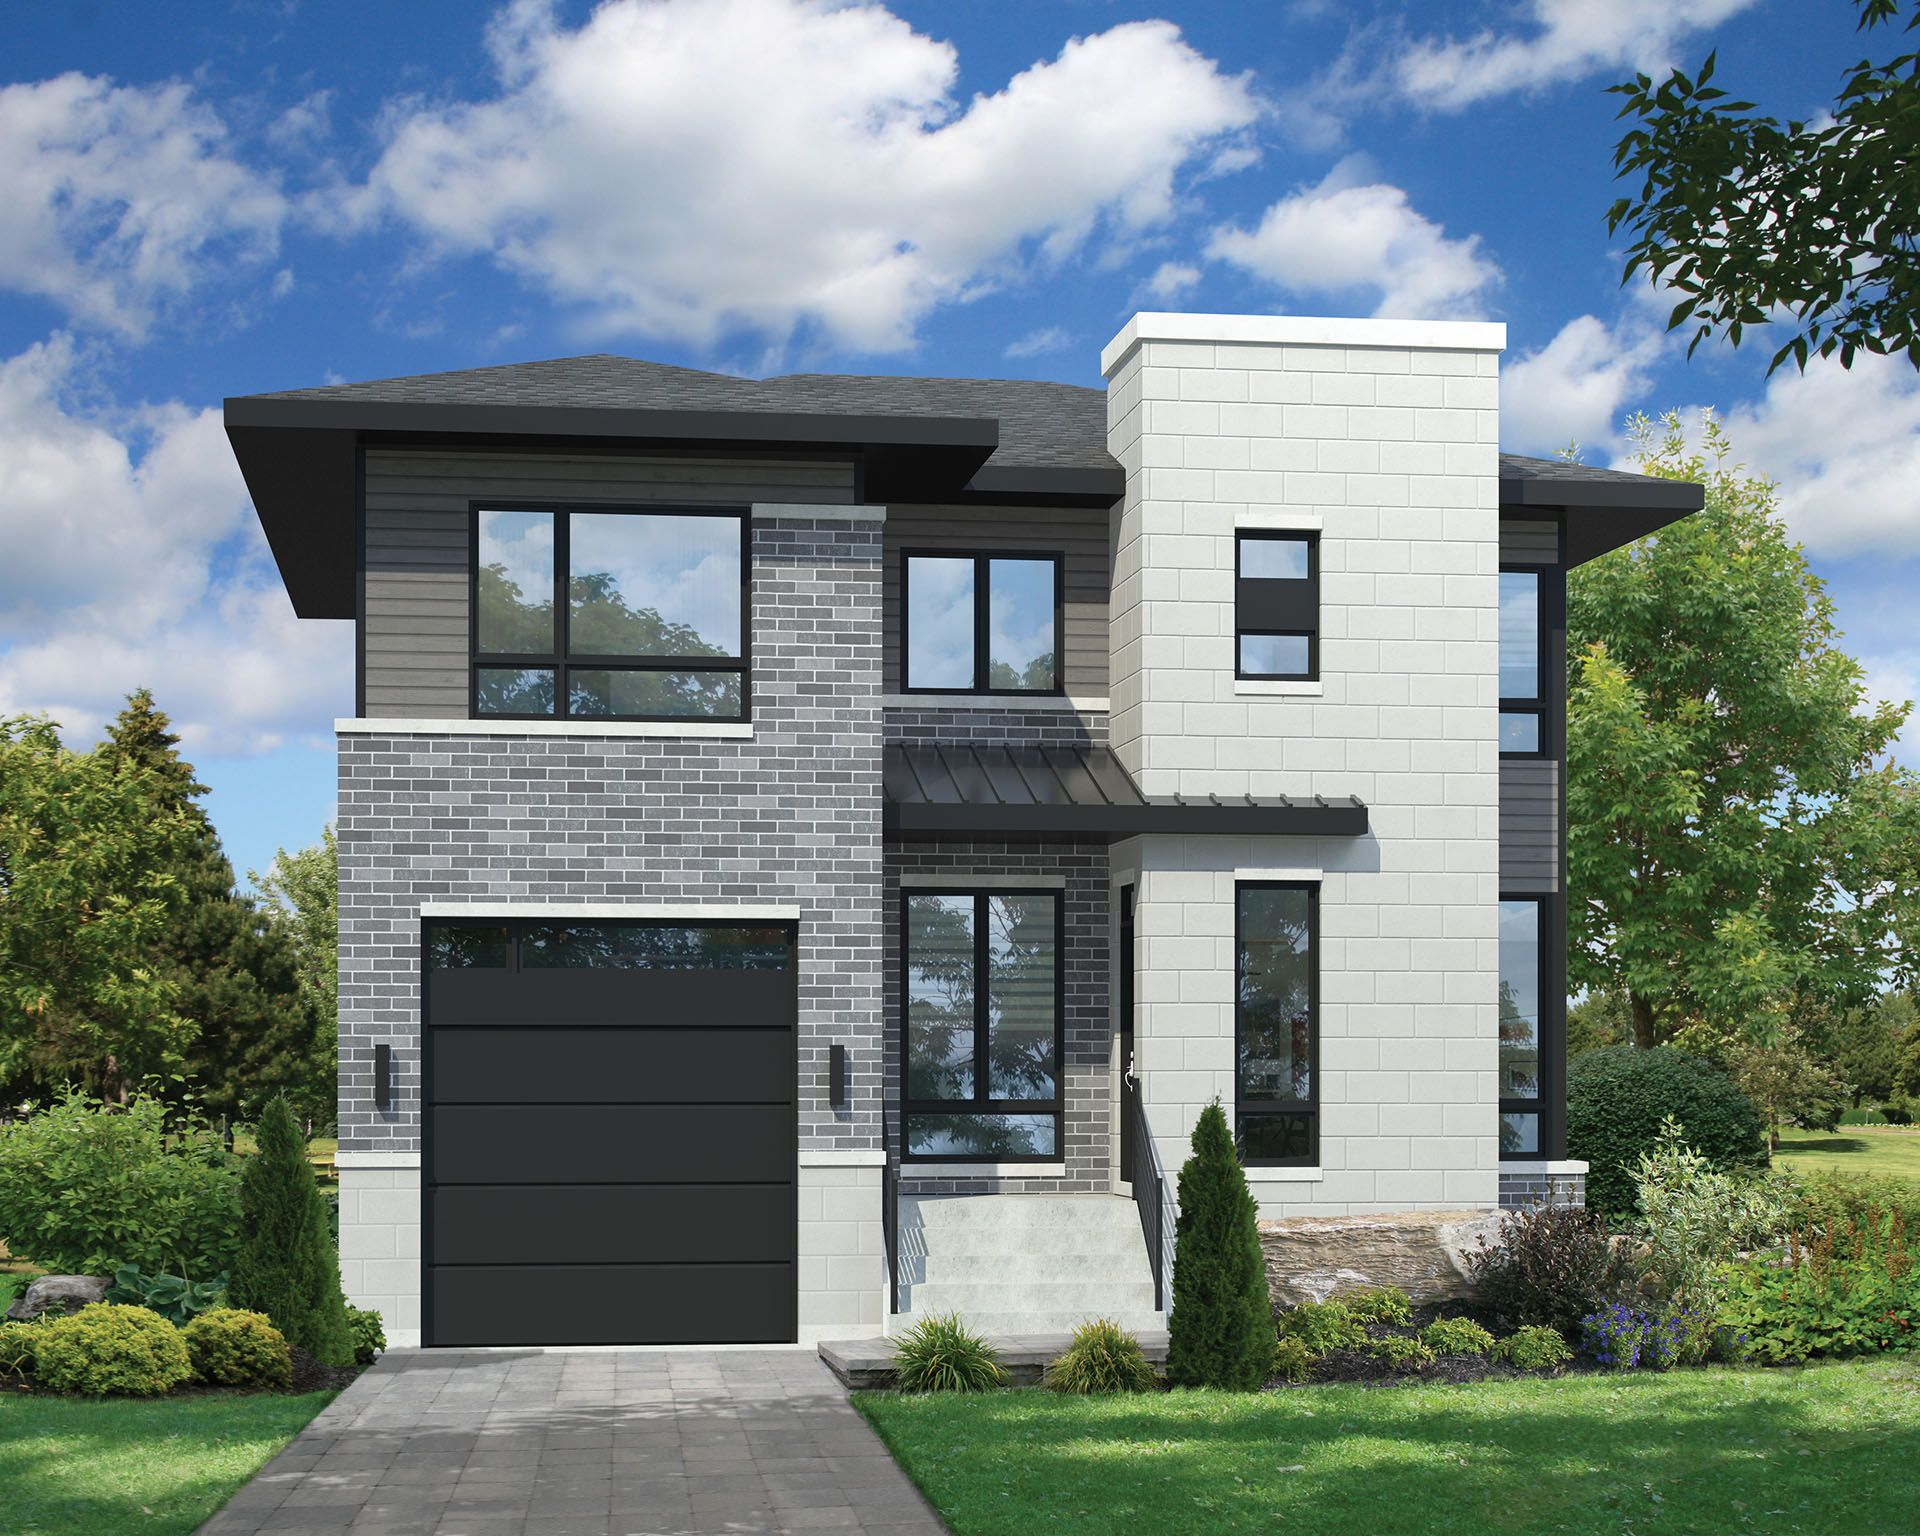 Two Story Contemporary House Plan in 2020 | Two story ...